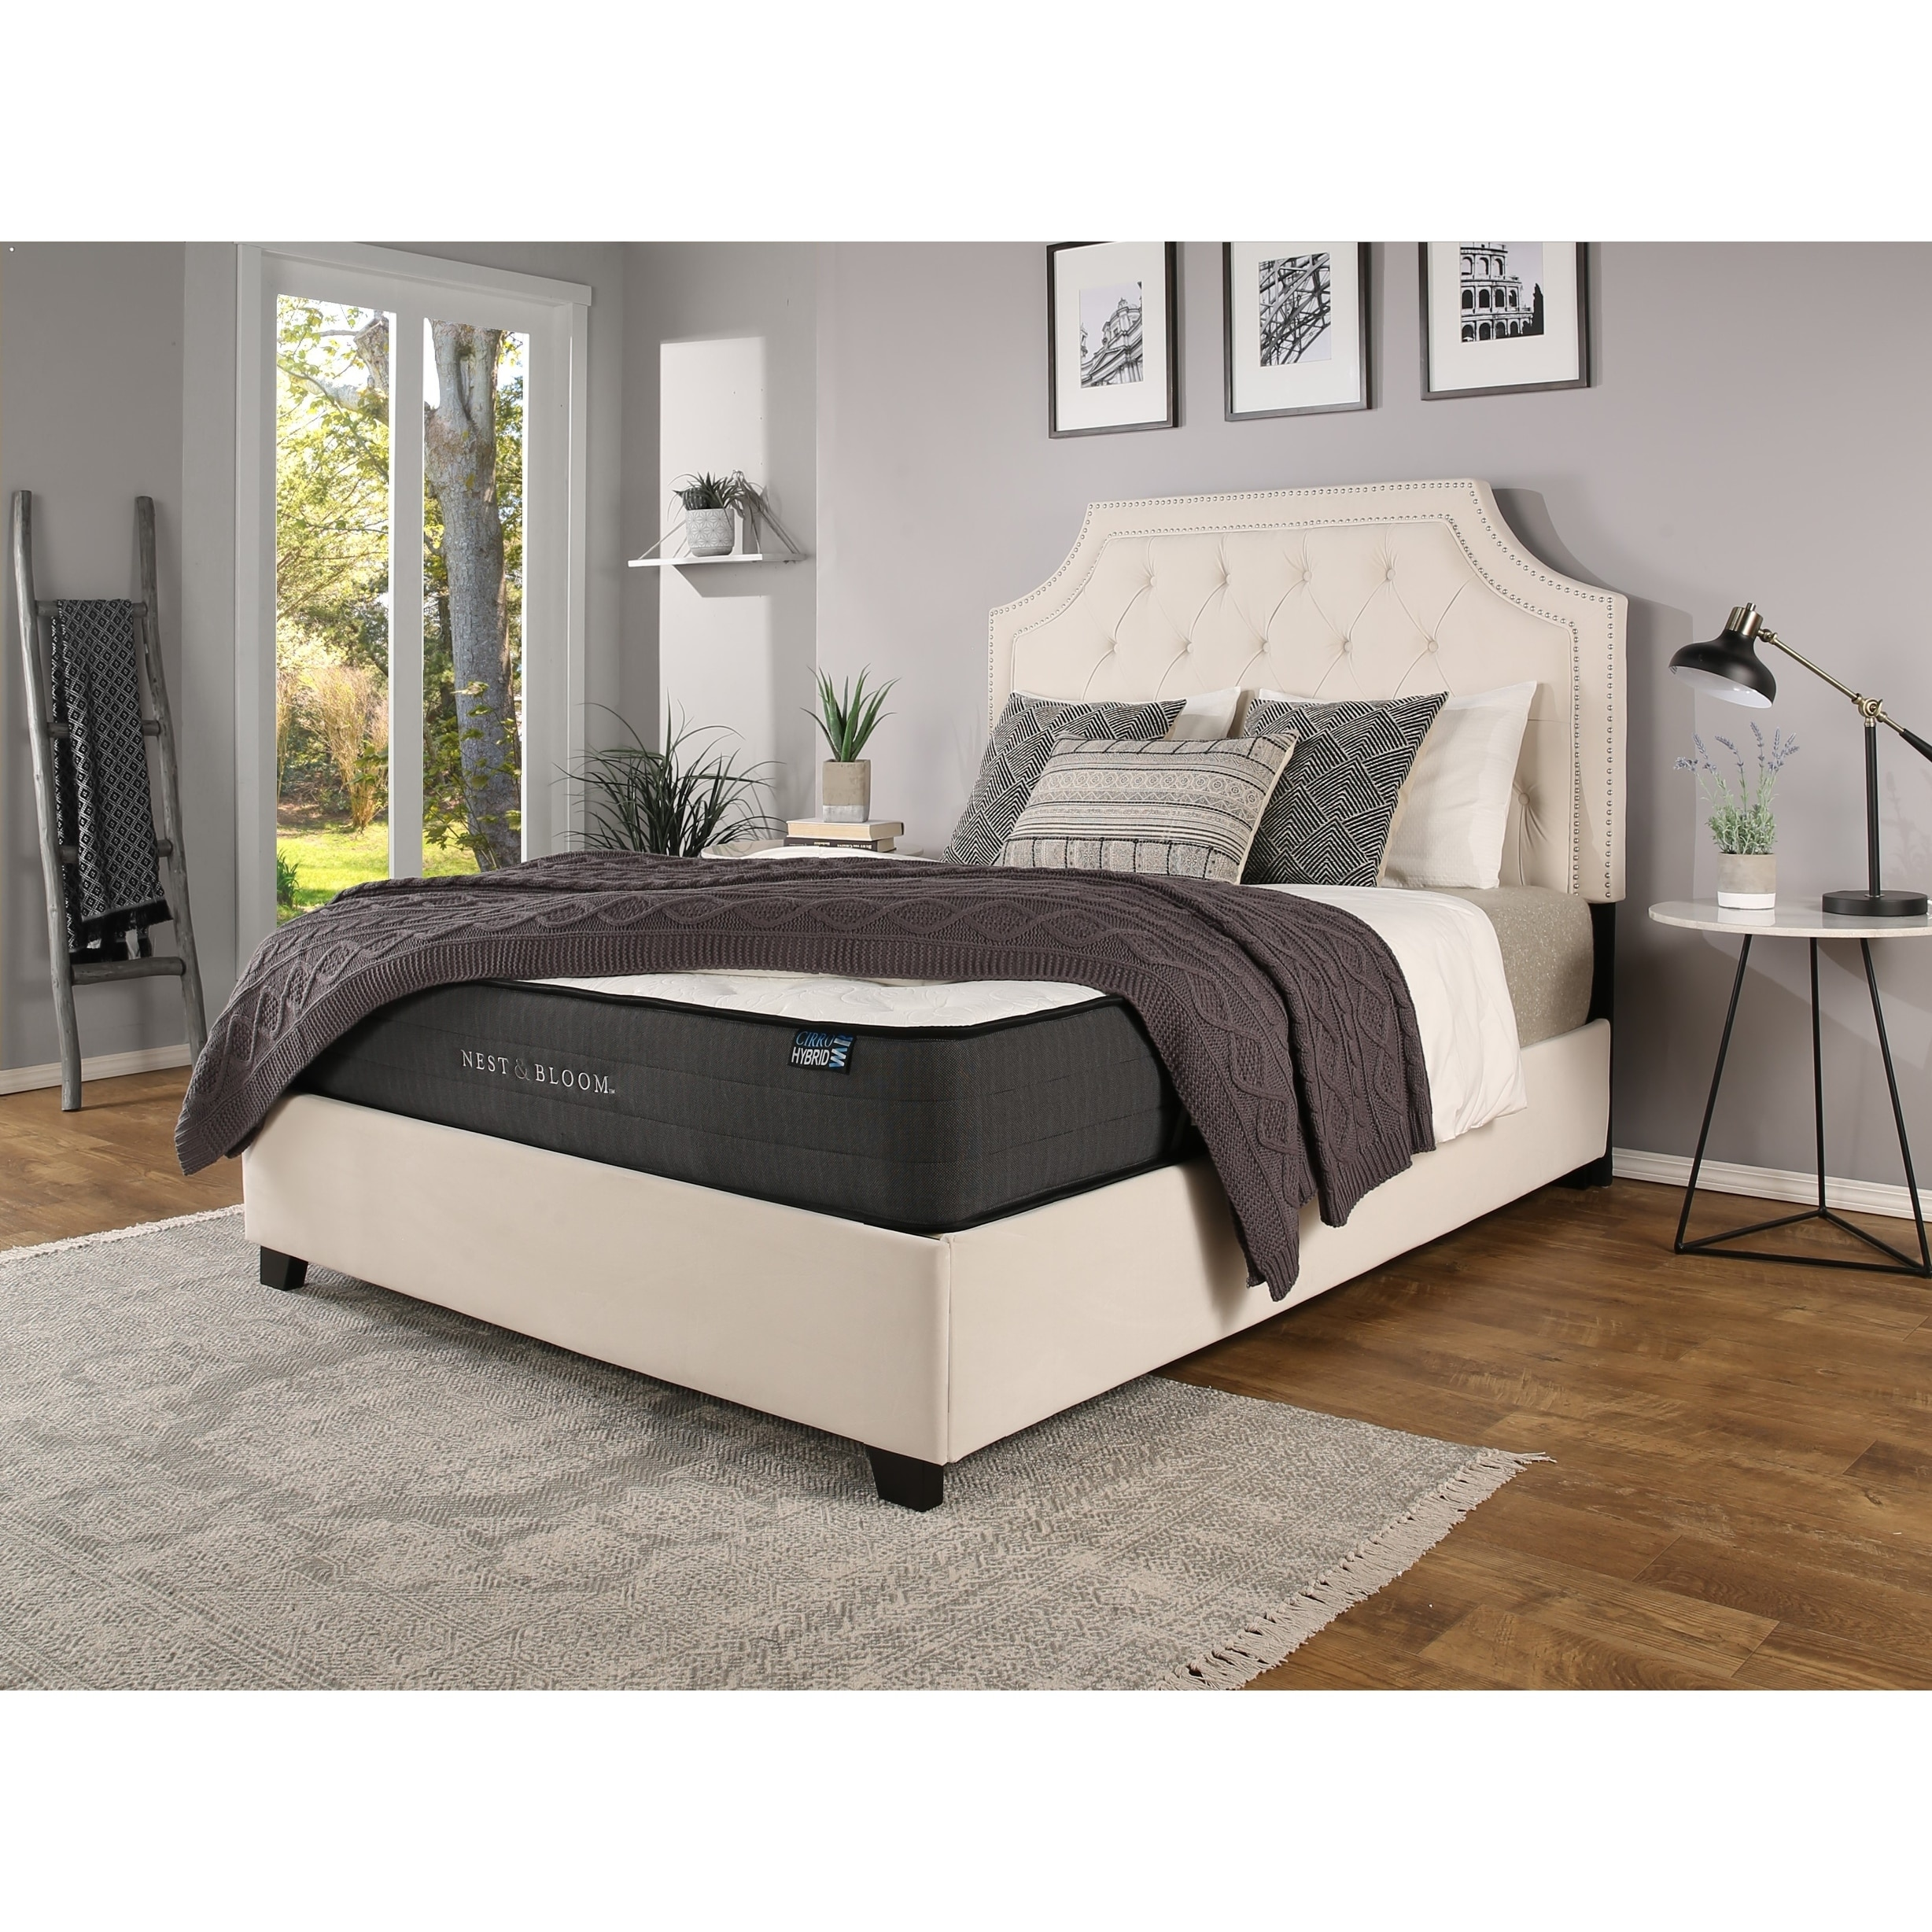 nest on reviews boss bed bedding images of awesome mattress pinterest best